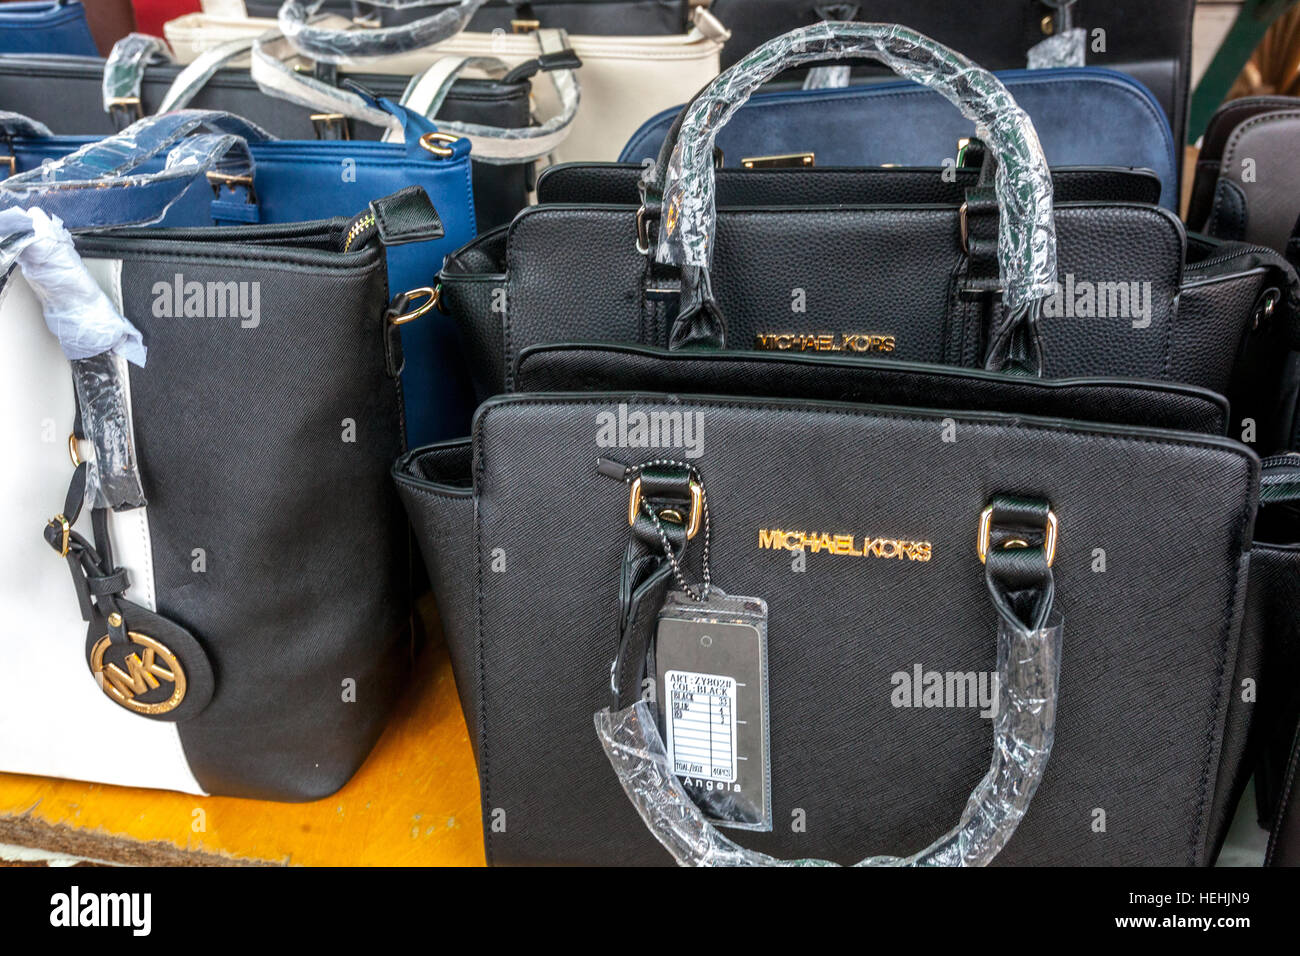 210b2f4cff37 Selling fake handbags renowned brand Michael Kors, market, Holesovice,  Prague, Czech Republic · Jose Okolo / Alamy Stock Photo